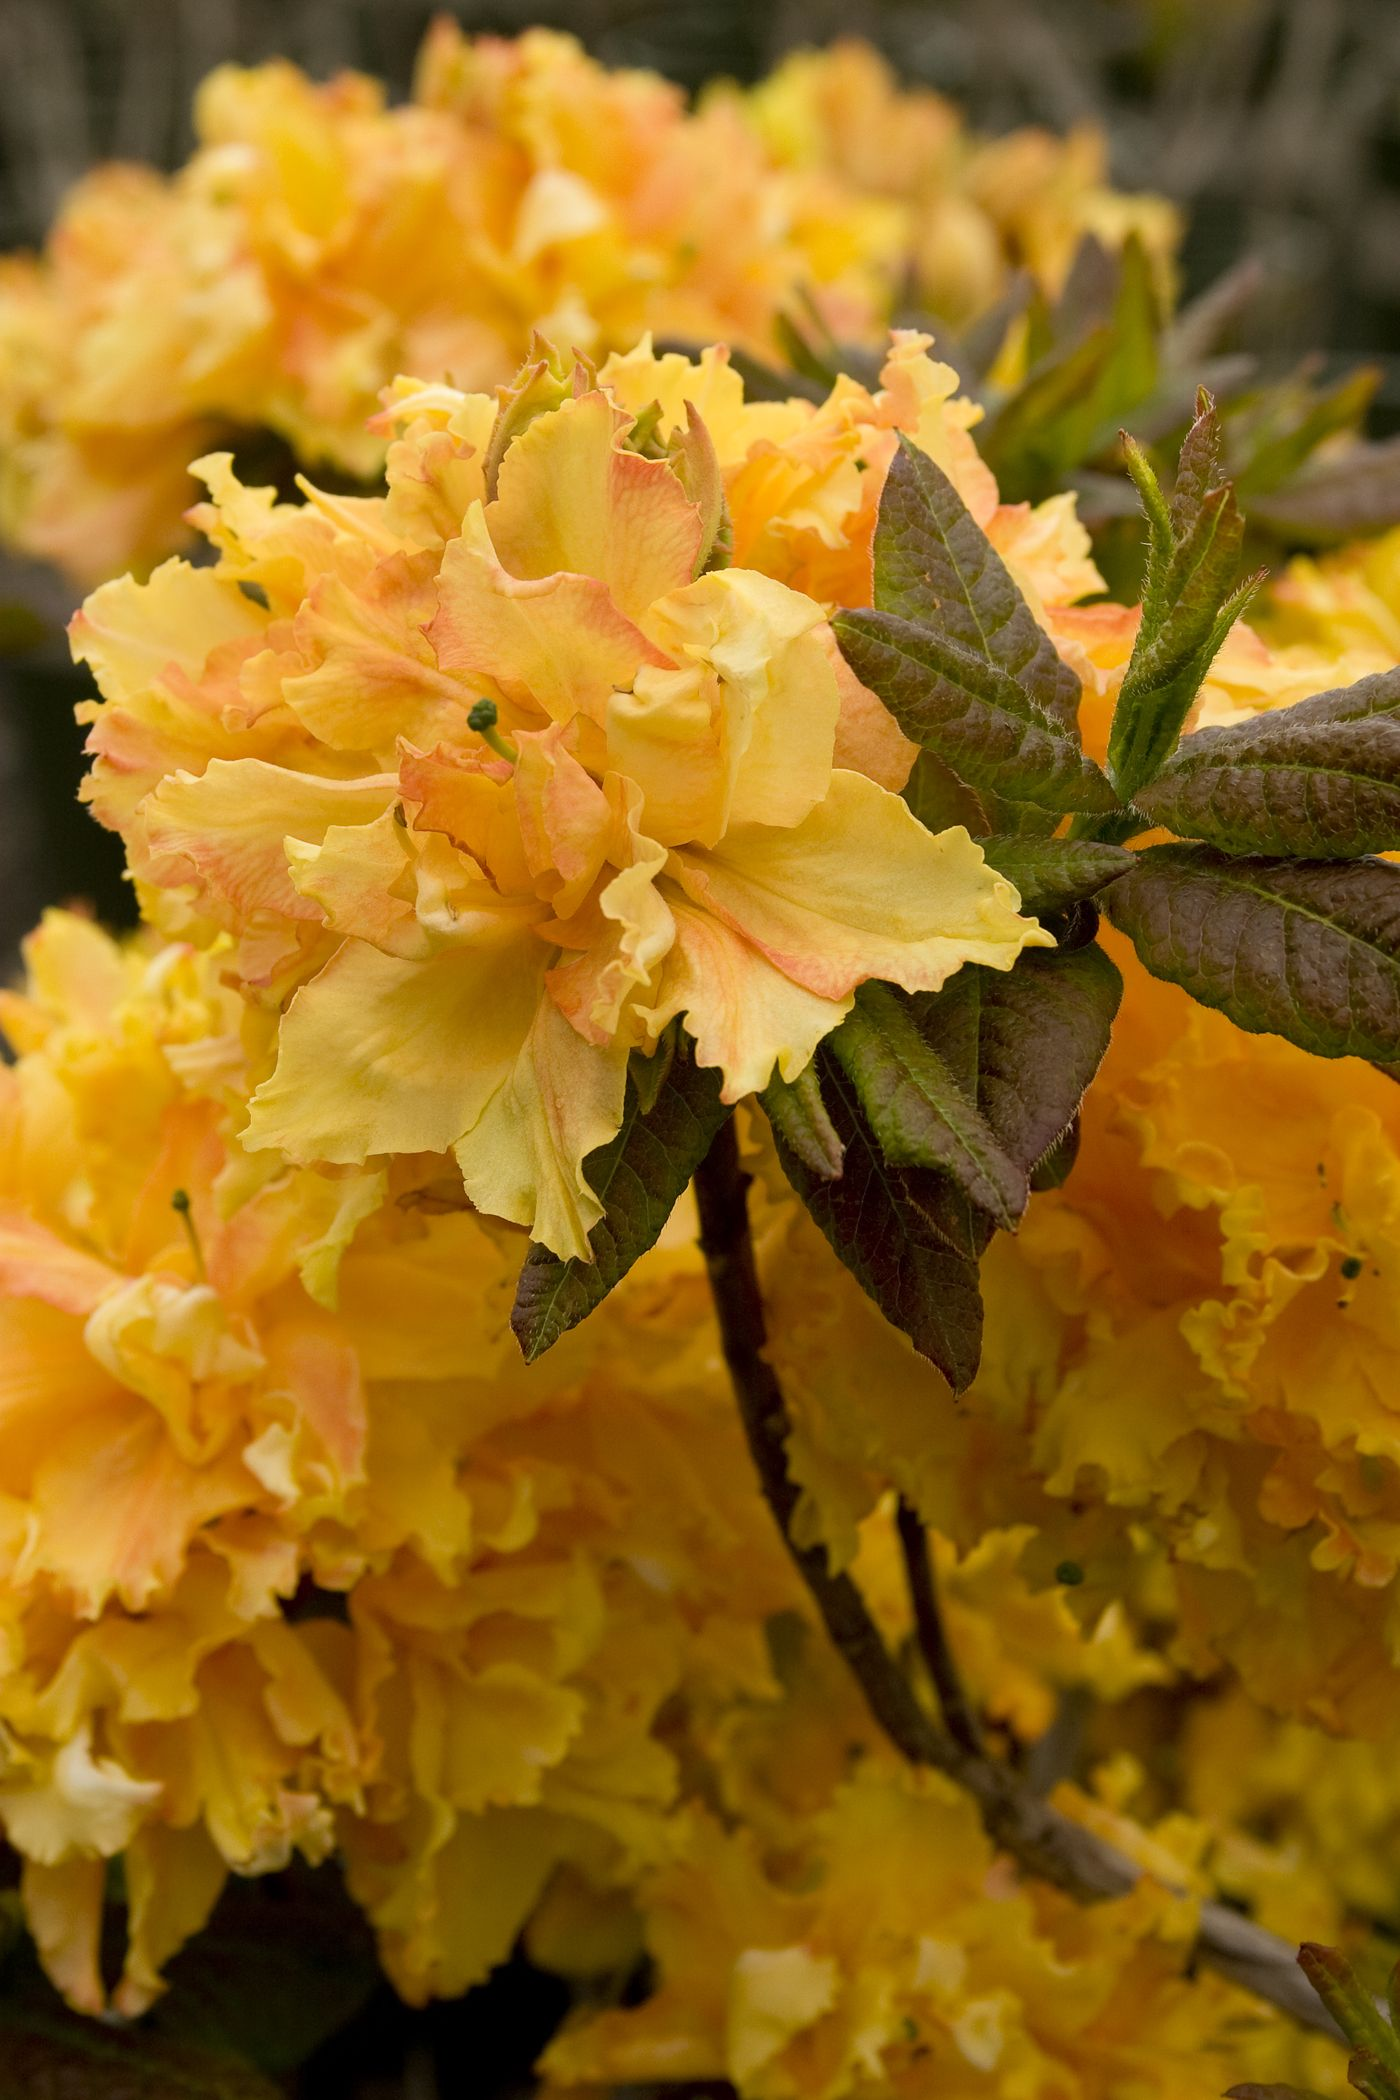 Cheerful Giant Azalea Monrovia Hardy Selection Which Provides A Massive Display Of Golden Yellow Double Blooms Wi Azalea Flower Garden Shrubs Flower Garden